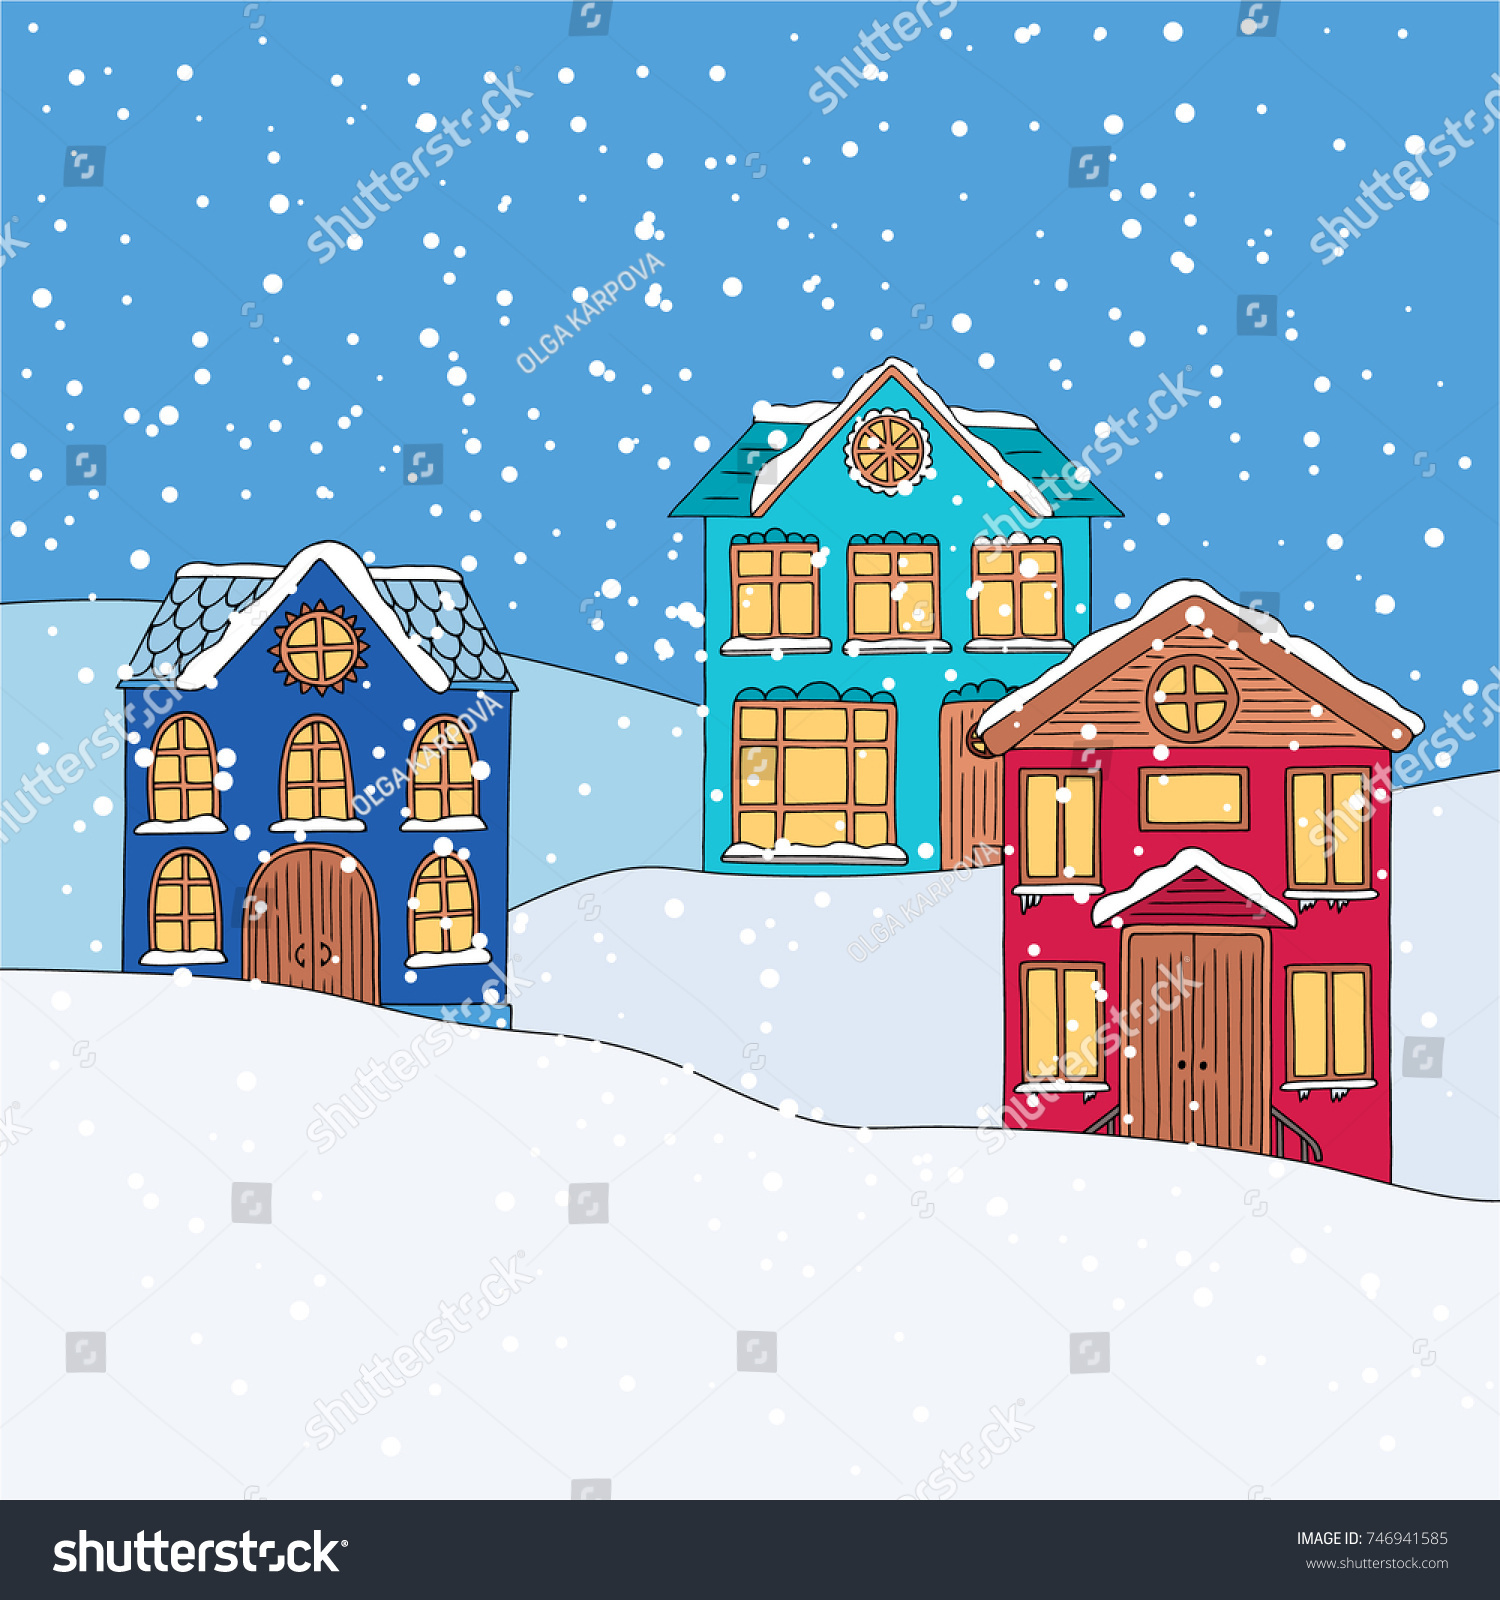 Winter houses cute doodle hand drawing evening scenery landscape with snow for christmas design